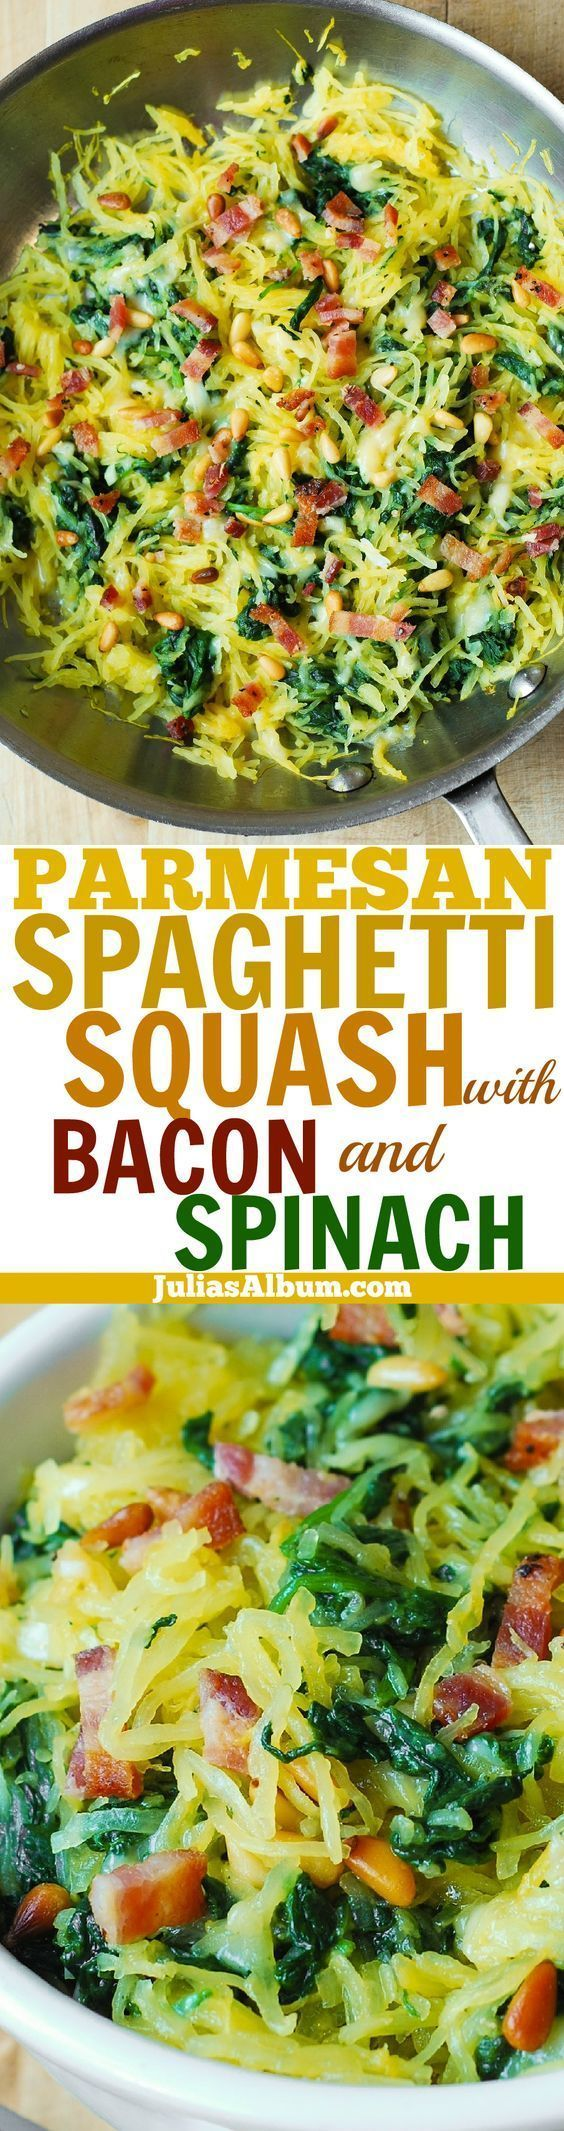 Garlic Spaghetti Squash, Spinach, and Bacon, + melted Parmesan cheese and toasted pine nuts. Delicious, healthy, gluten free! (Low Carb Squash Recipes)